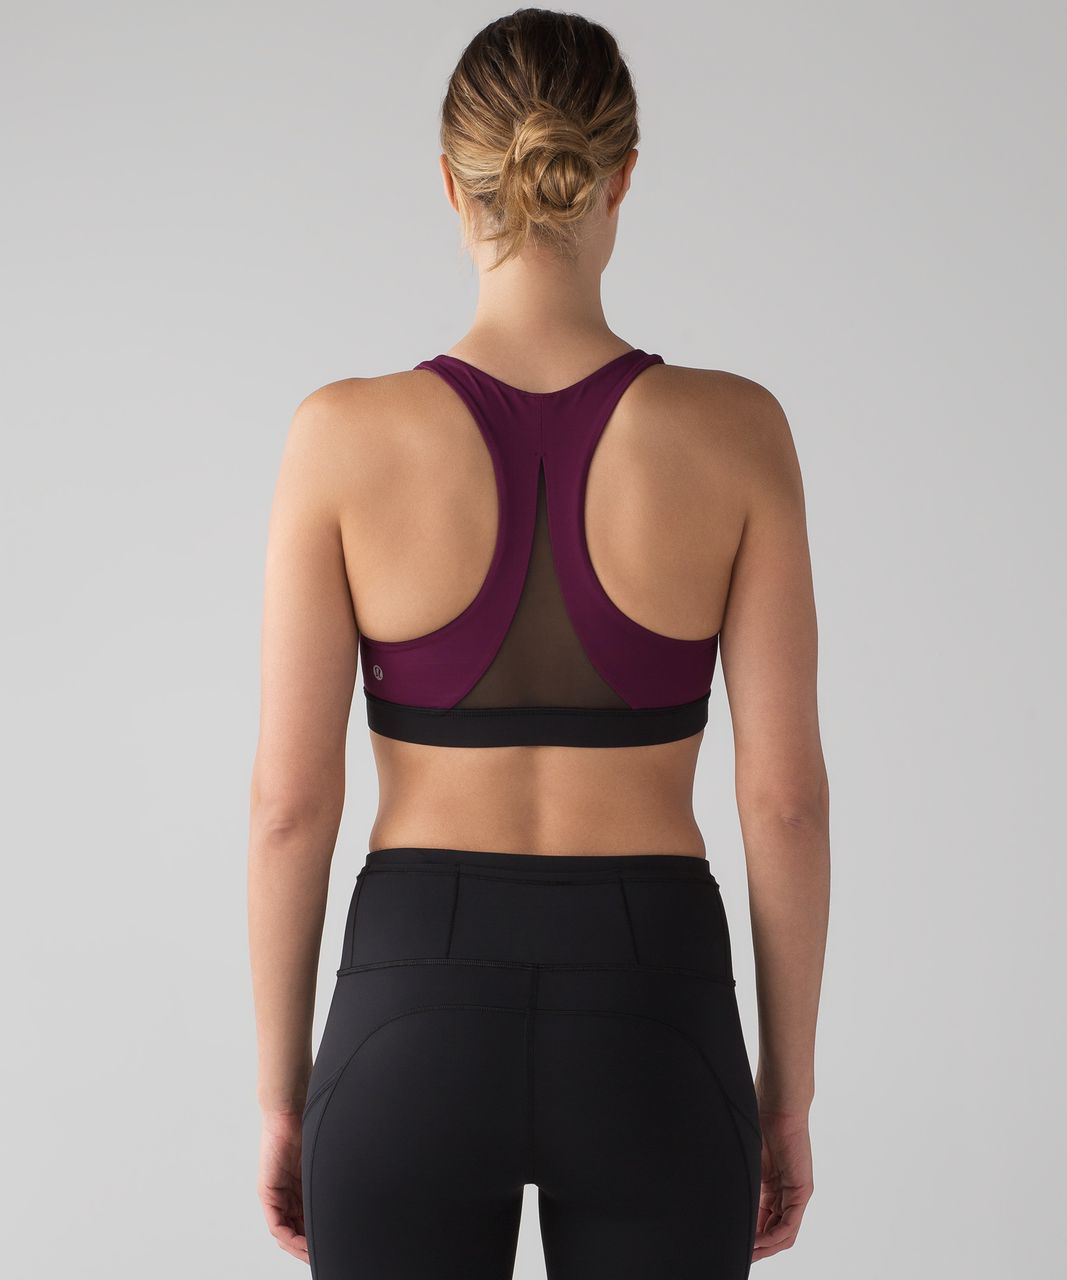 Lululemon Invigorate Bra - Marvel / Black